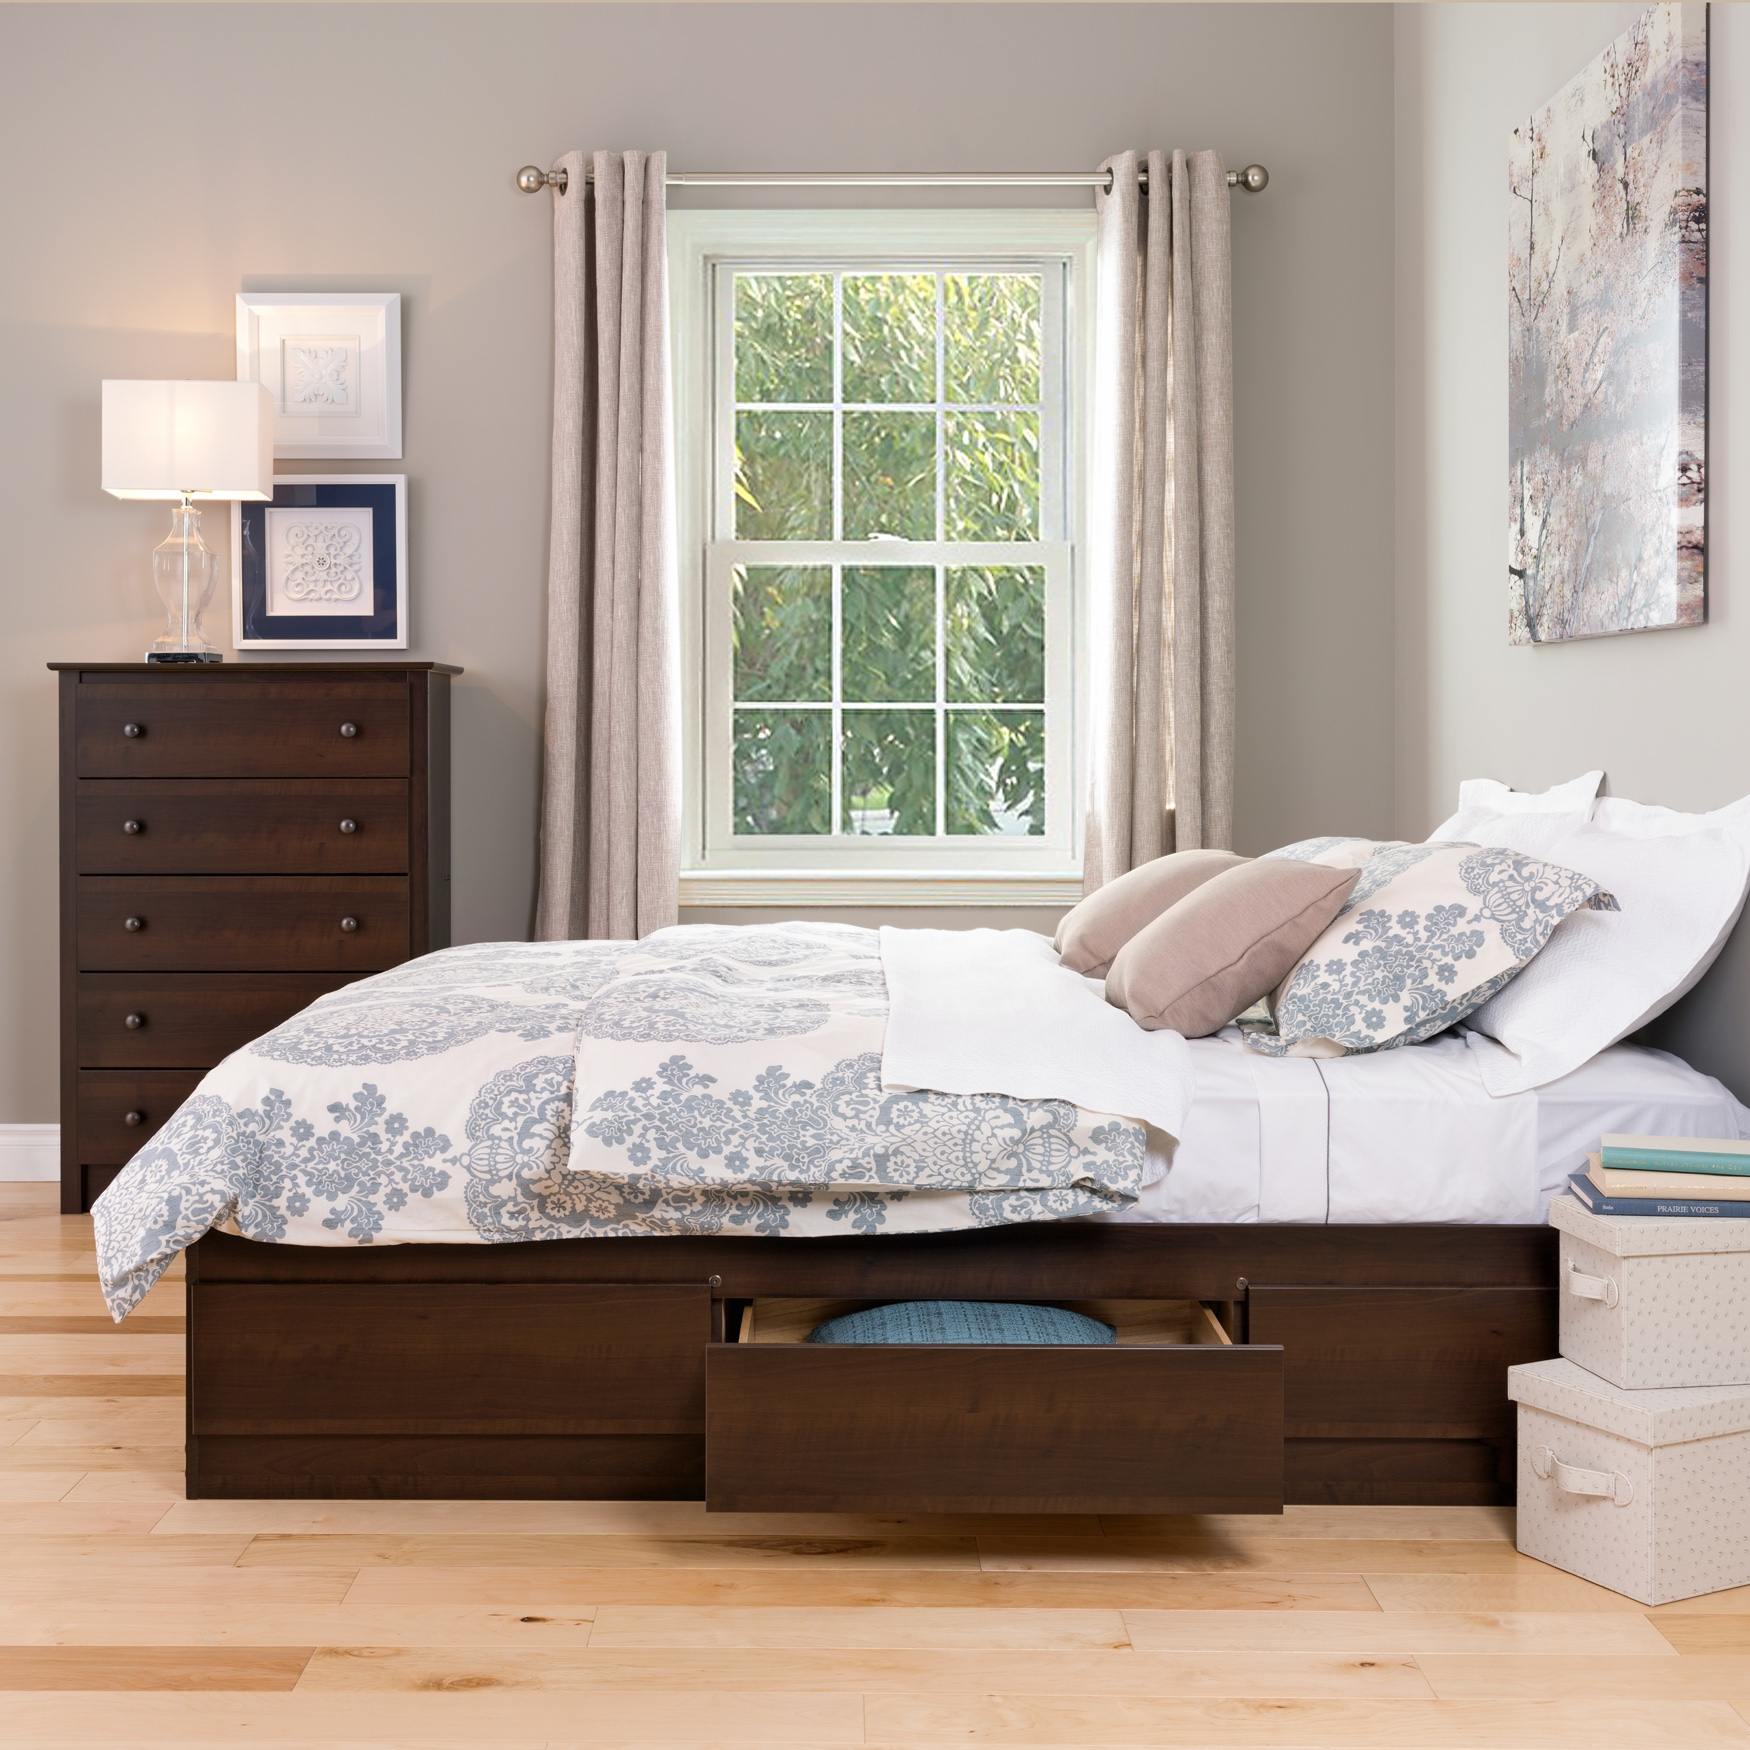 Coal Harbor Queen Mate's Platform Storage Bed with 6 Drawers,